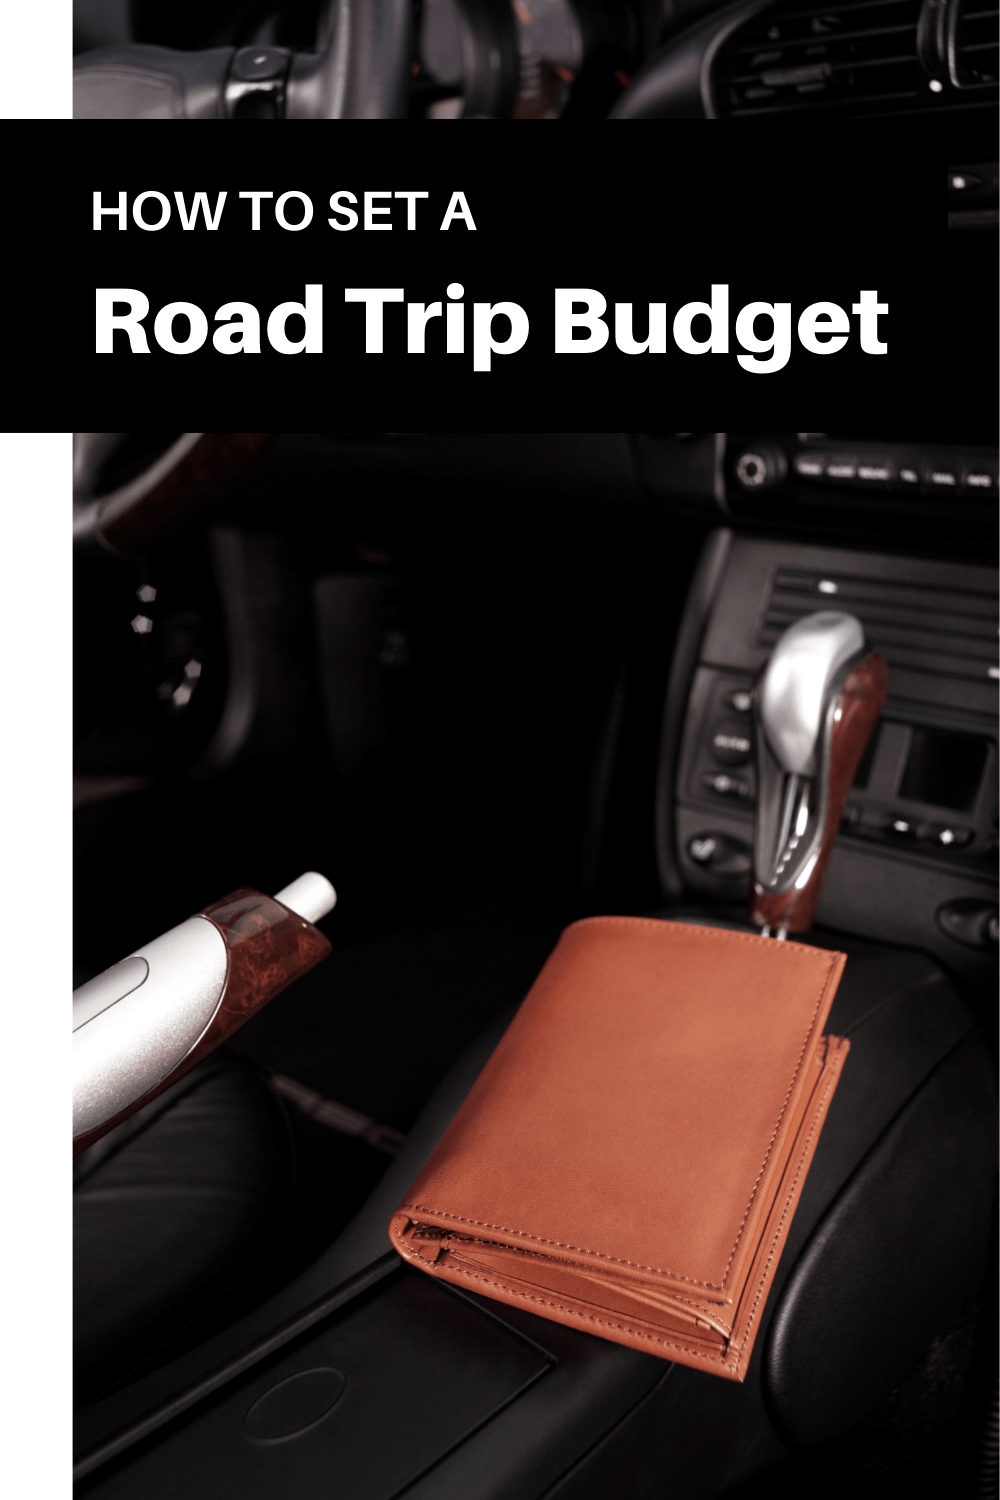 This essential road trip budget planner will help you get organized to save money and road trip wisely. Road trips don't have to cost a lot but by planning ahead you'll get the most bang for your buck. These tips will show you how to plan a road trip on a budget.  #RoadTrip #RoadTripPlanner #RoadTripBudget #RoadTripBudgetPlanner #RoadTripBudgetTips #RoadTripTips #RoadTripPlanning